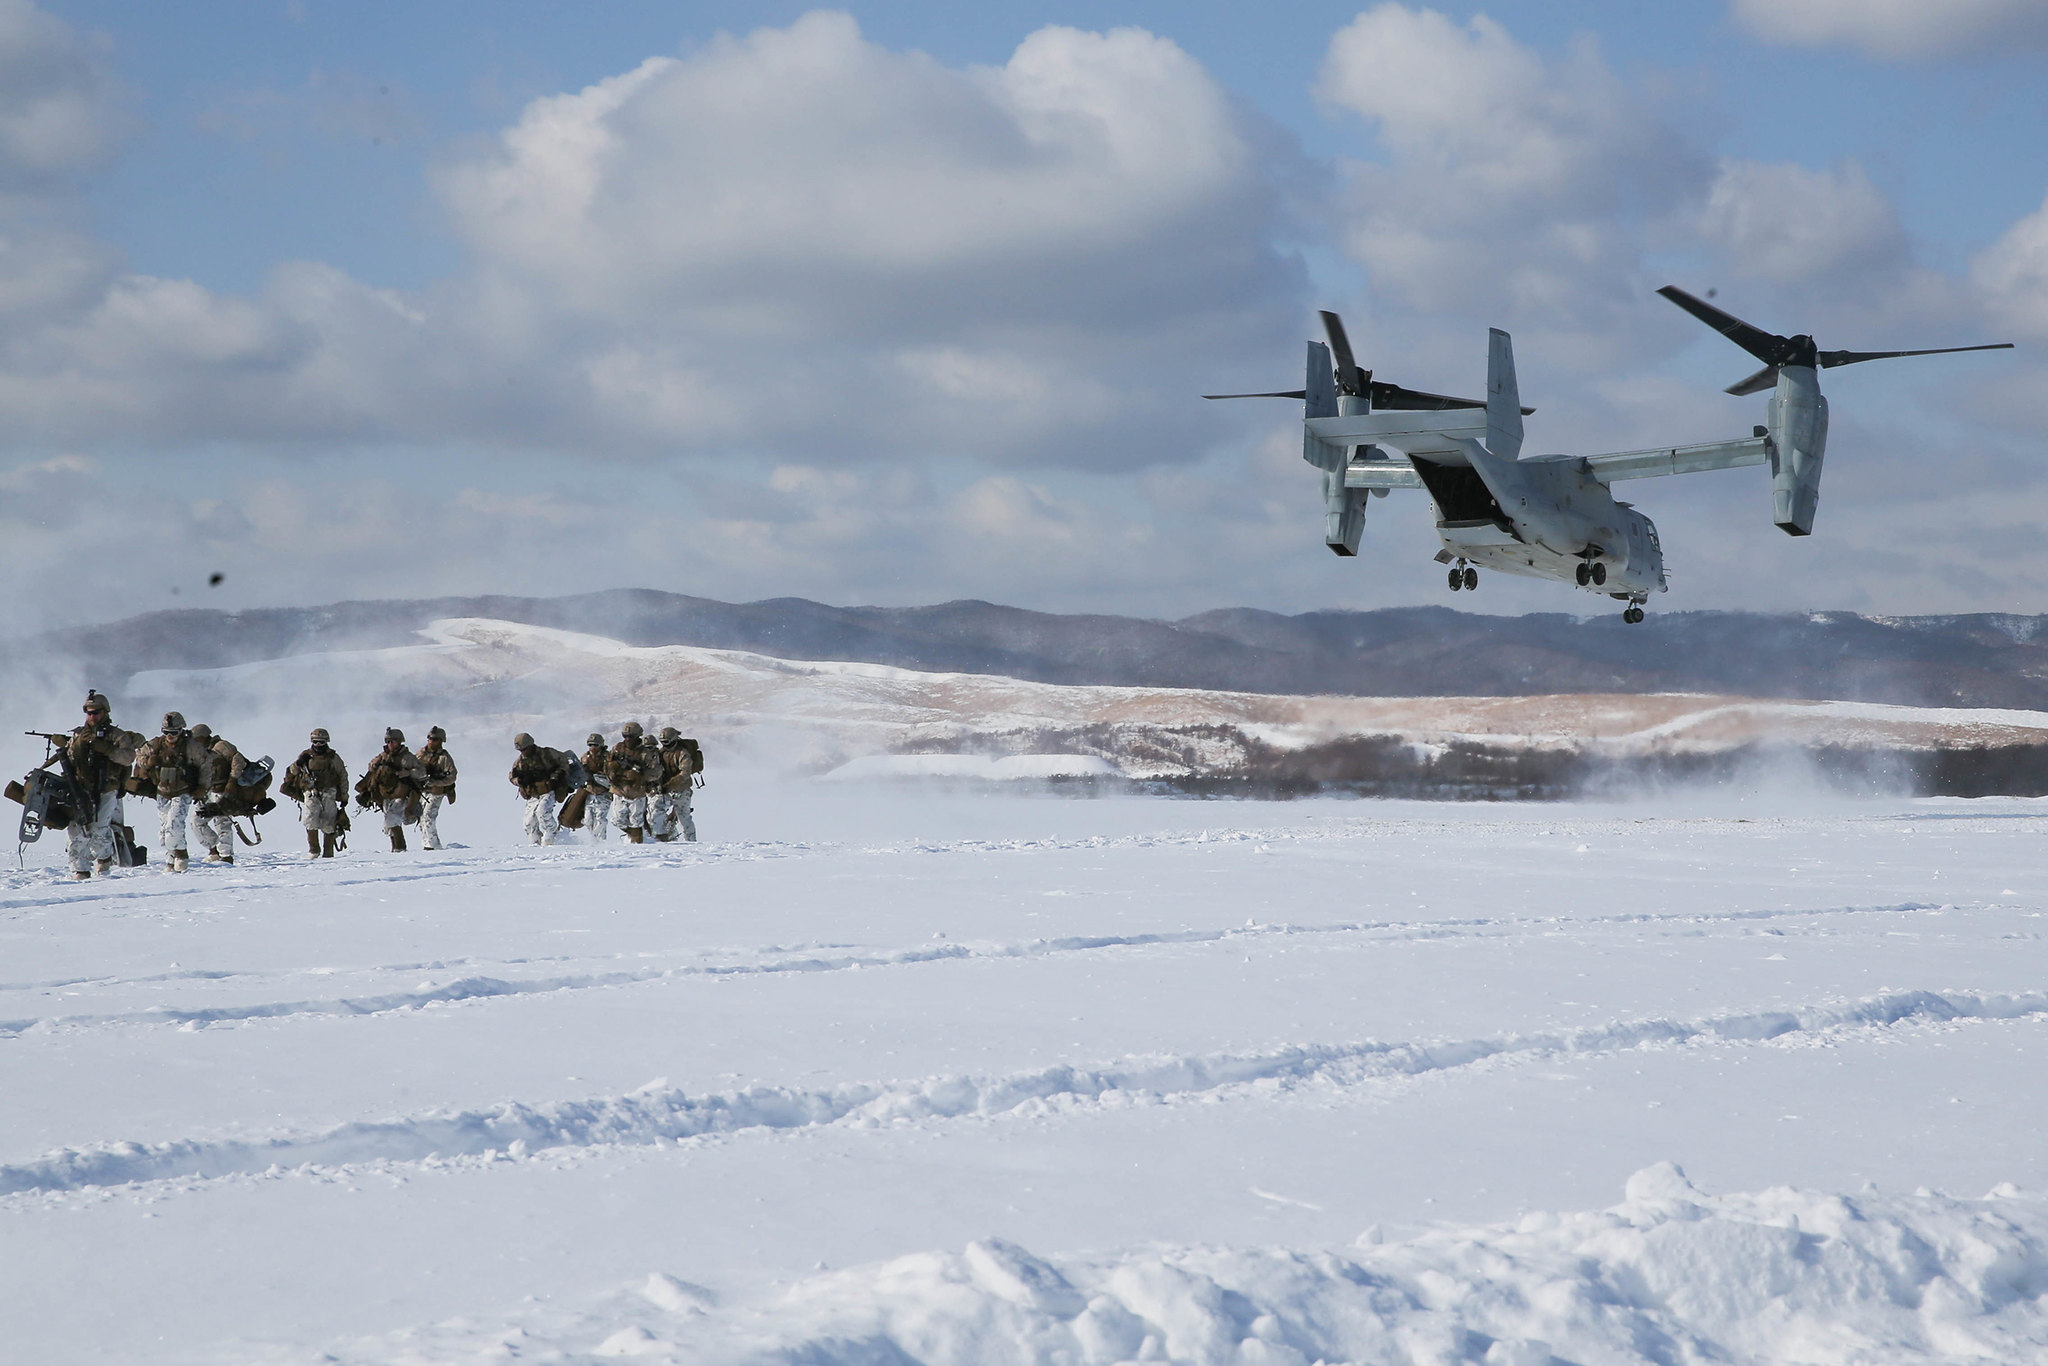 An MV-22B Osprey drops off U.S. Marines and members of the Japan Ground Self-Defense Force for a heliborne insert during Northern Viper at Hokudaien Training Area, Hokkaido, Japan, Feb. 5, 2020. (1st Lt. Brett Vannier/Marine Corps)